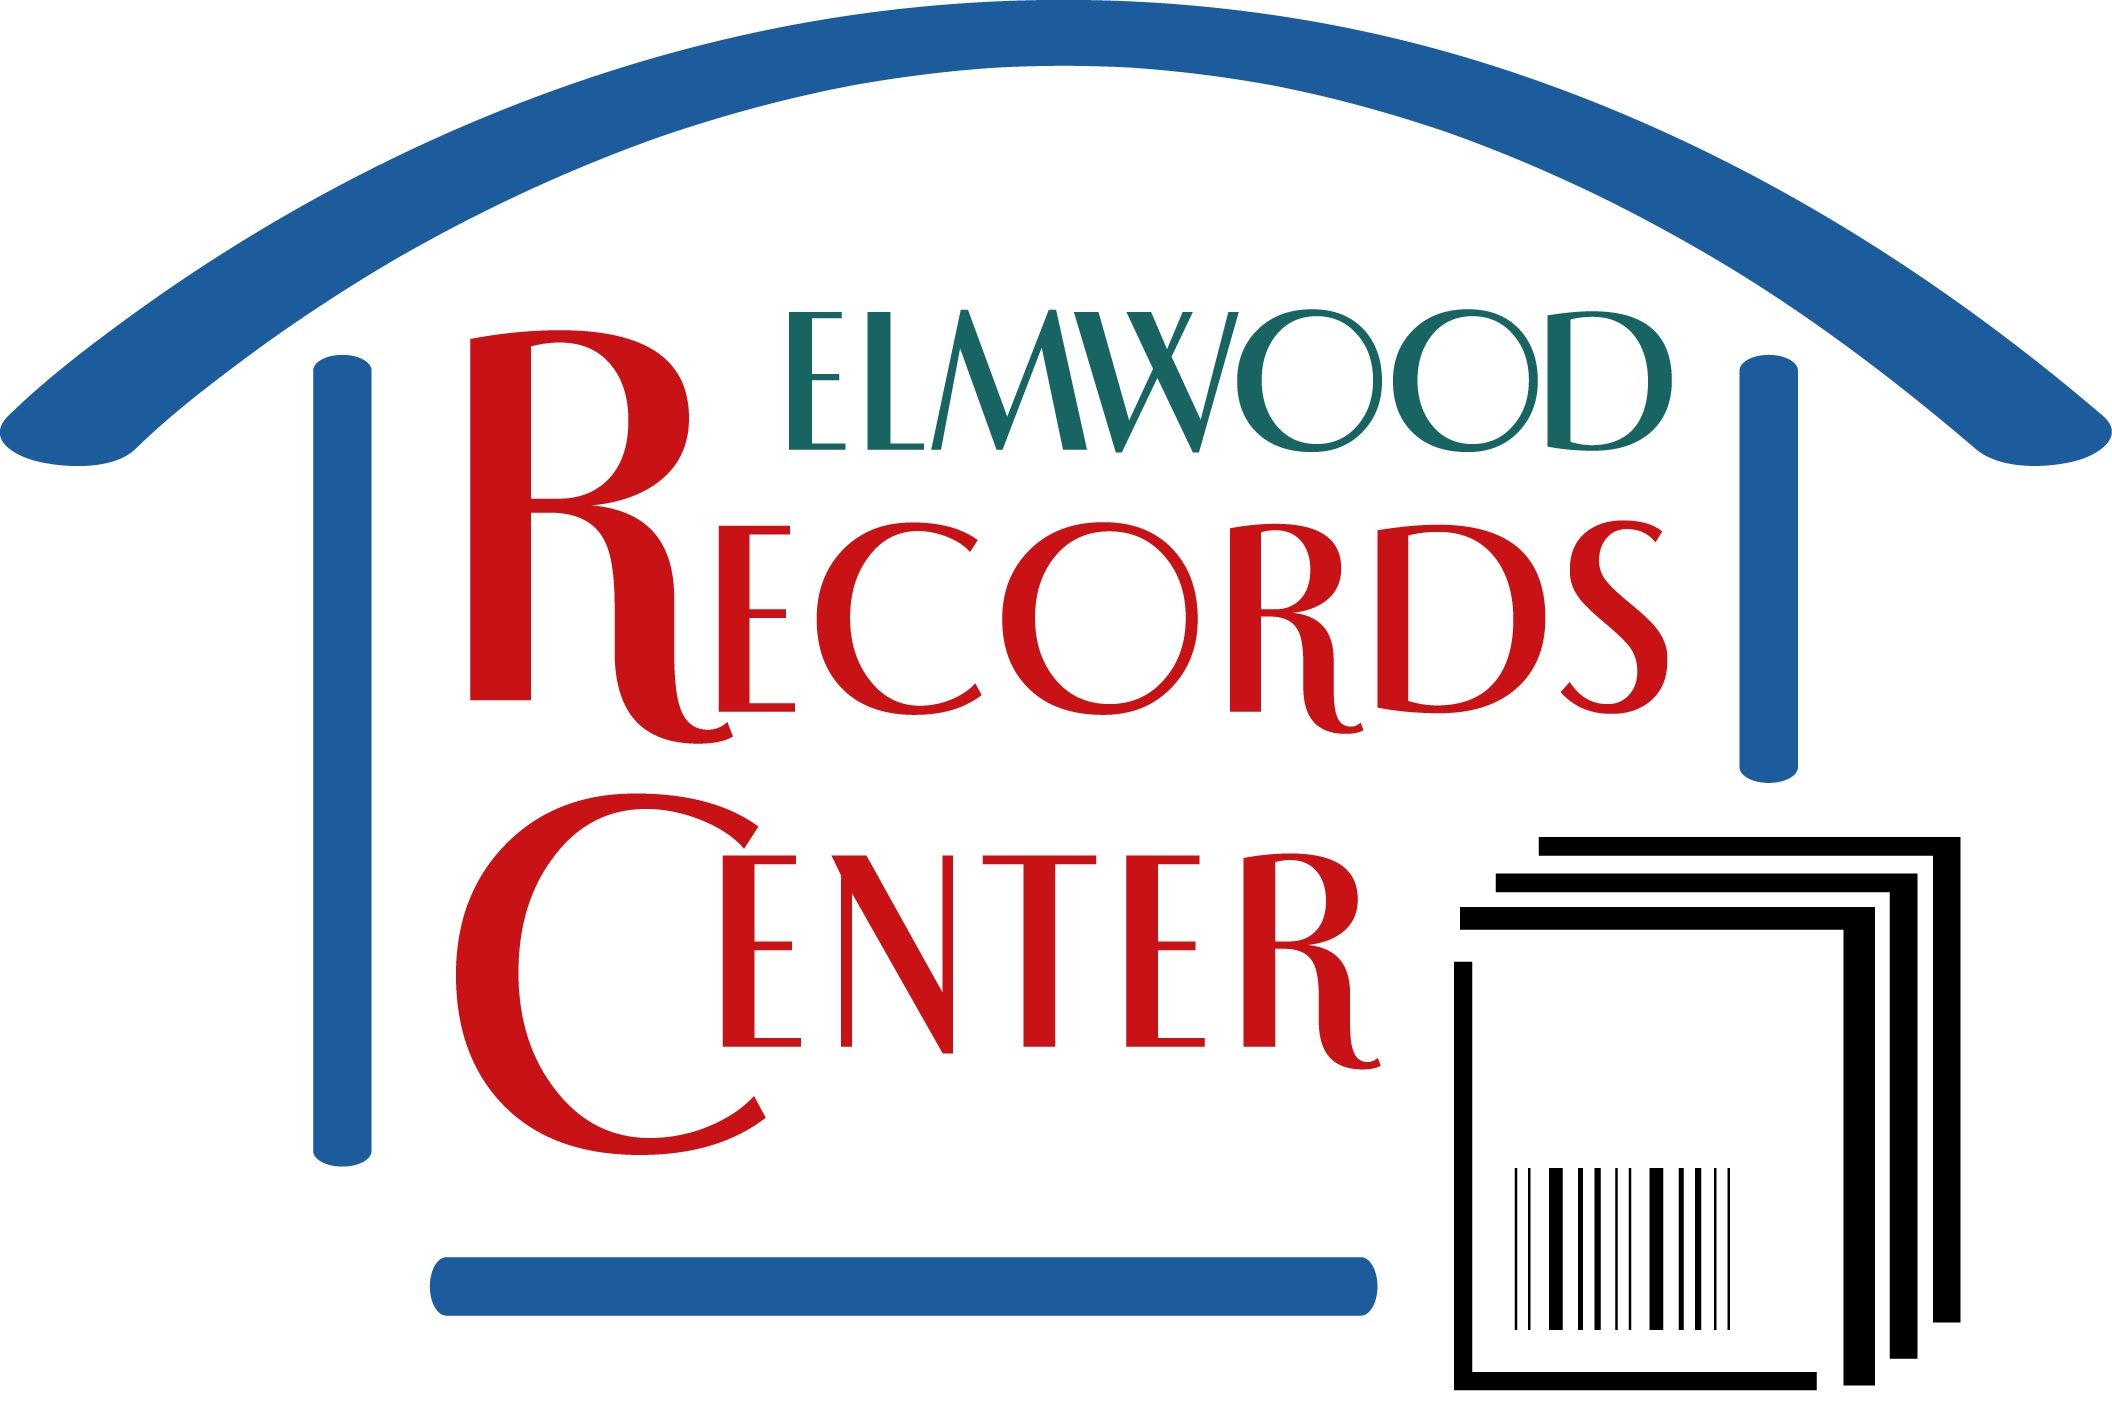 Elmwood Records Center